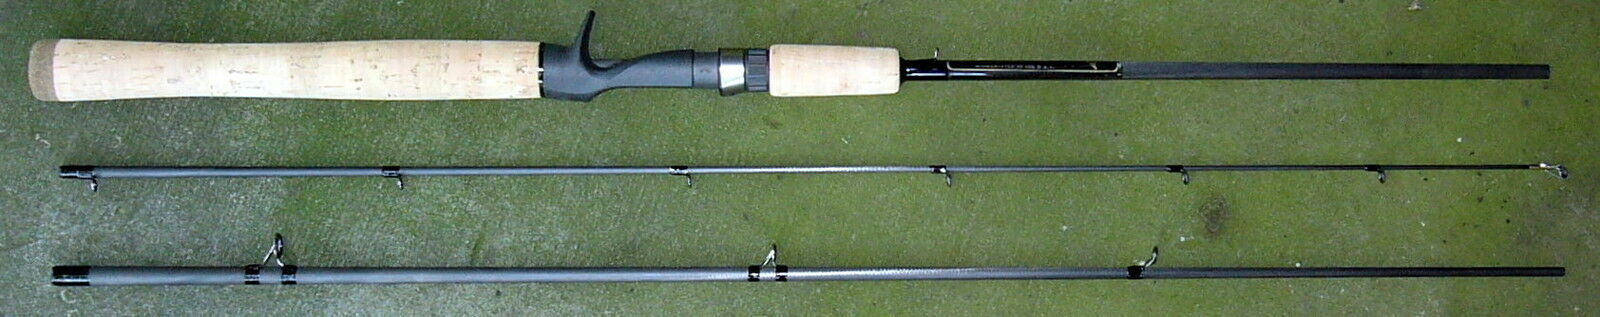 Custom Bespoke Multi-Piece Freshwater Travel Casting Fishing Rods MADE TO ORDER